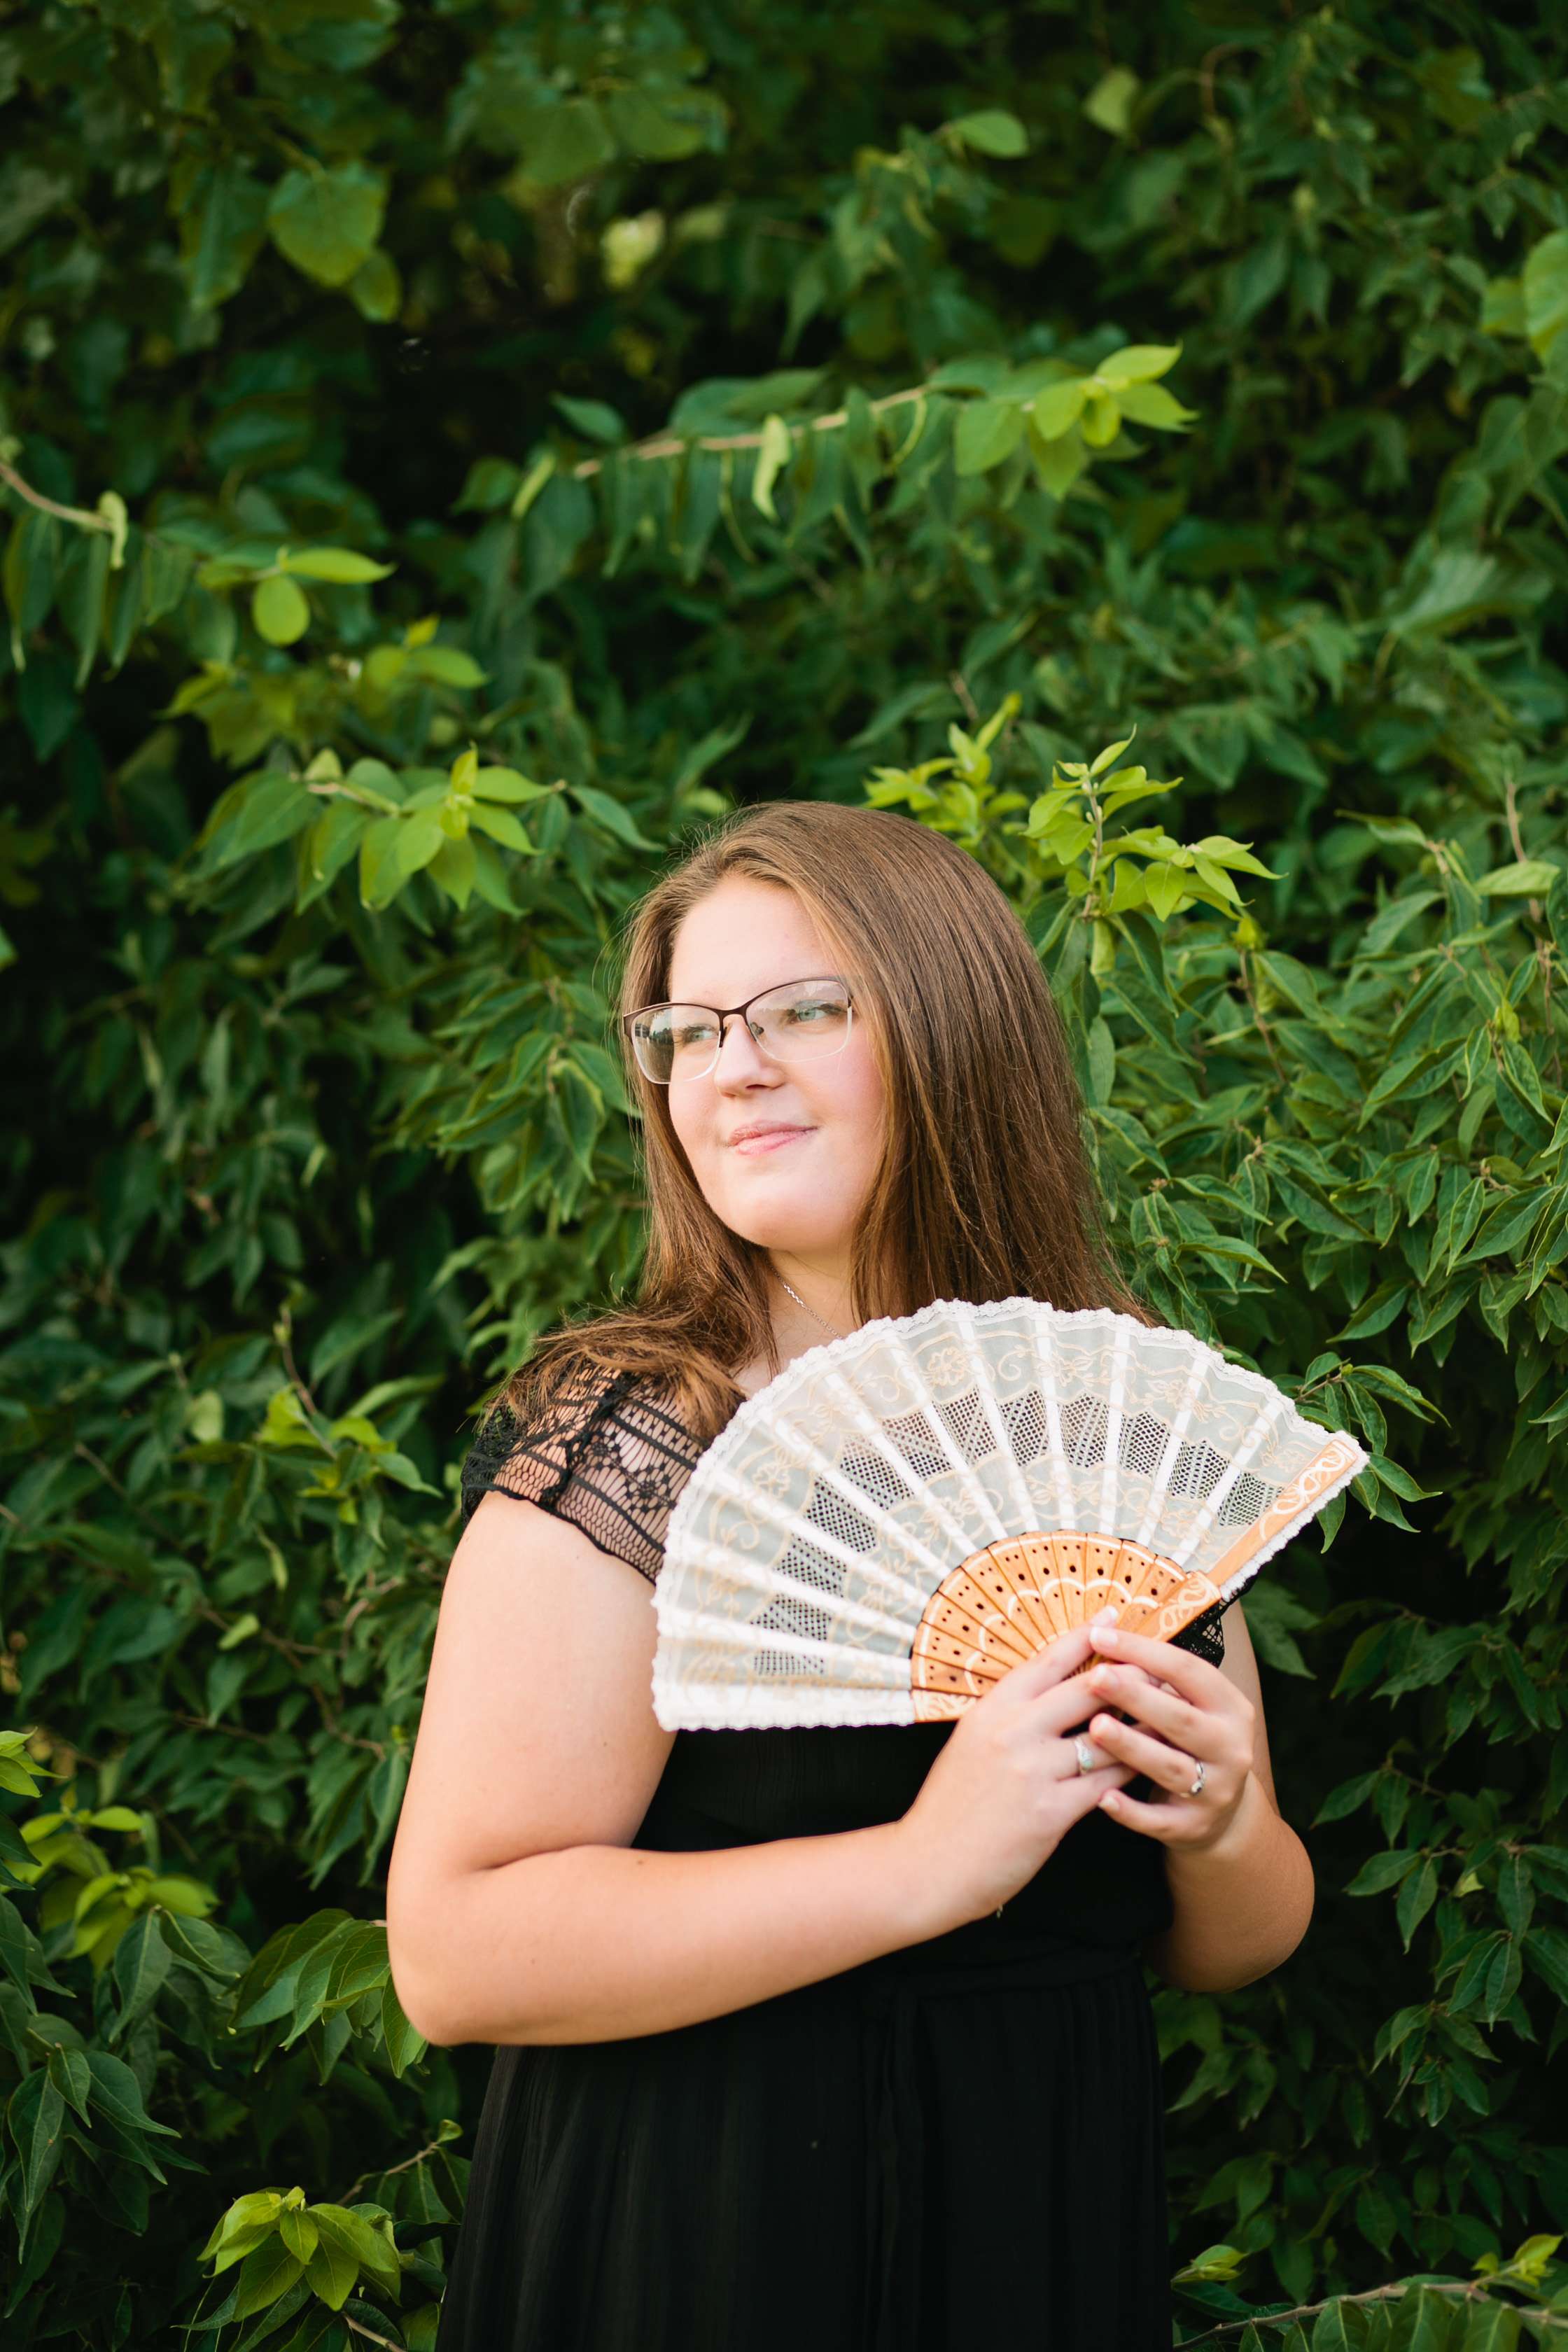 girl with japanese fan in formal dress